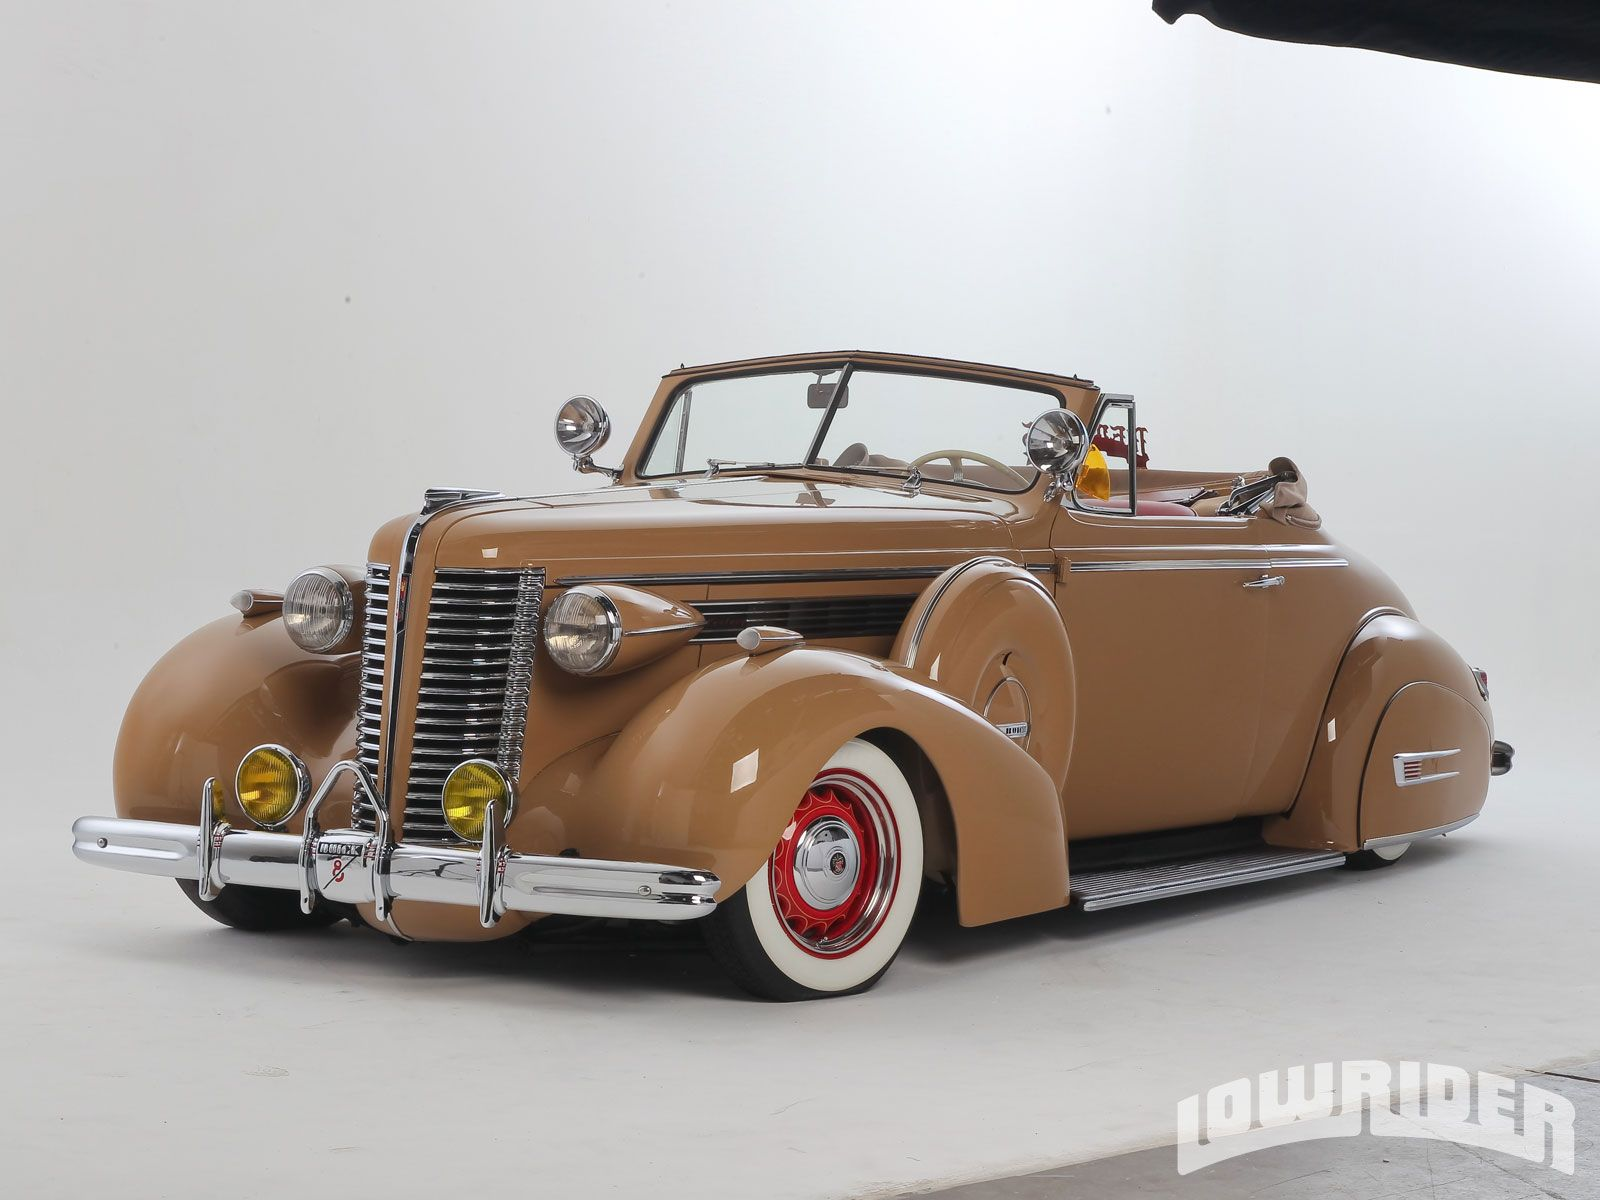 With This Special Project It Is Safe To Say That The Rare 1938 Buick